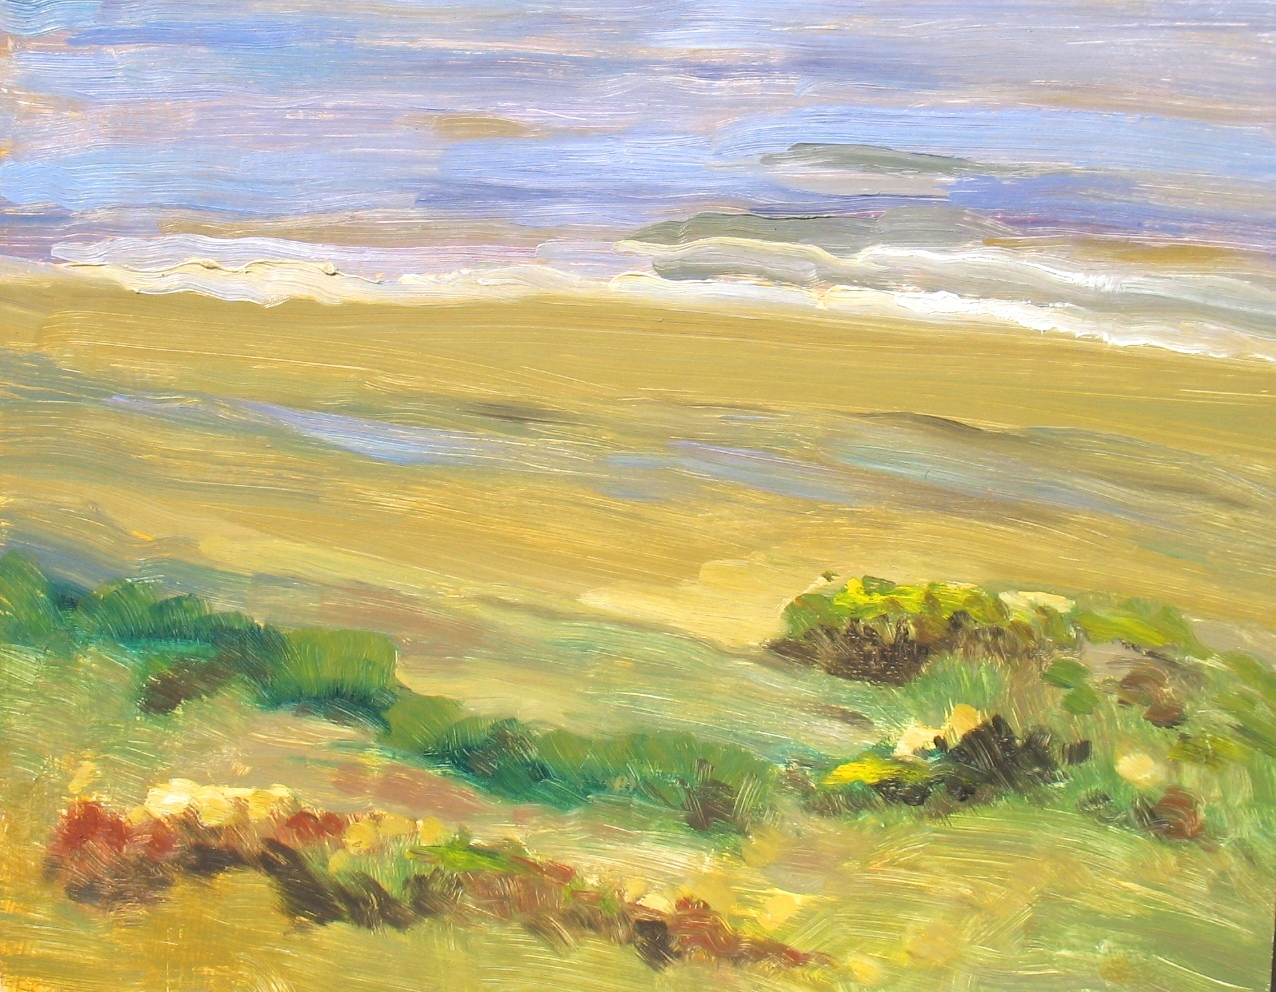 Sandy Shore, 11 x 14 inches, oil on panel